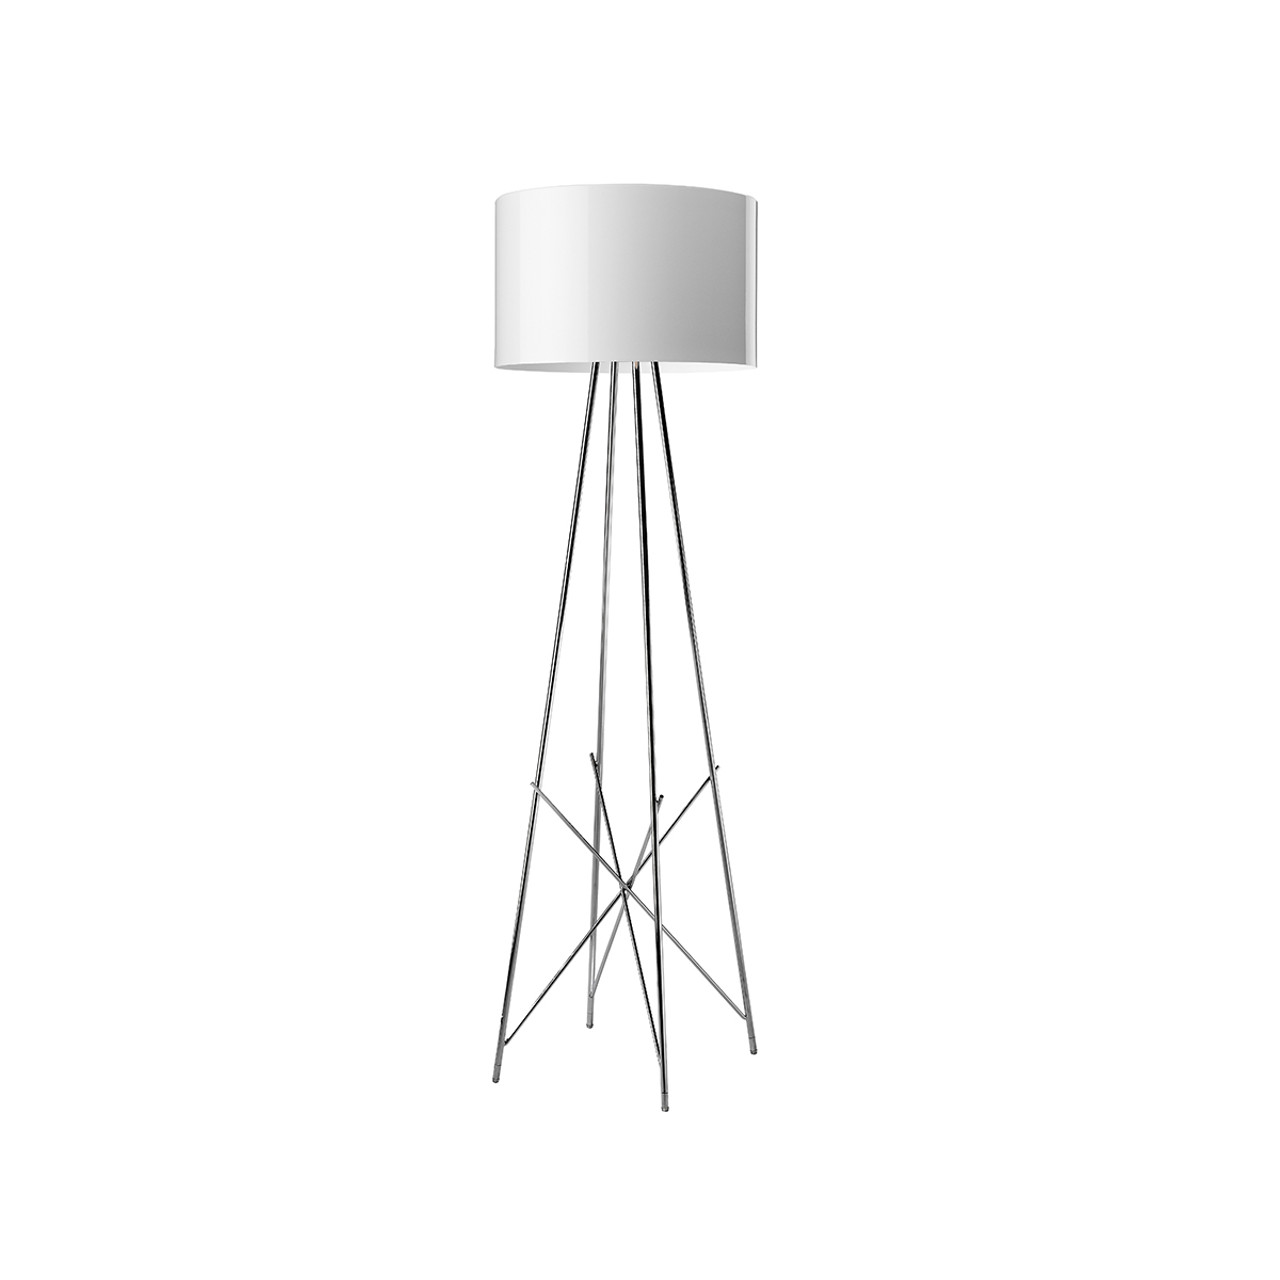 Peachy Ray F Floor Lamp Led Dimmable In Glossy Black Or White Gmtry Best Dining Table And Chair Ideas Images Gmtryco